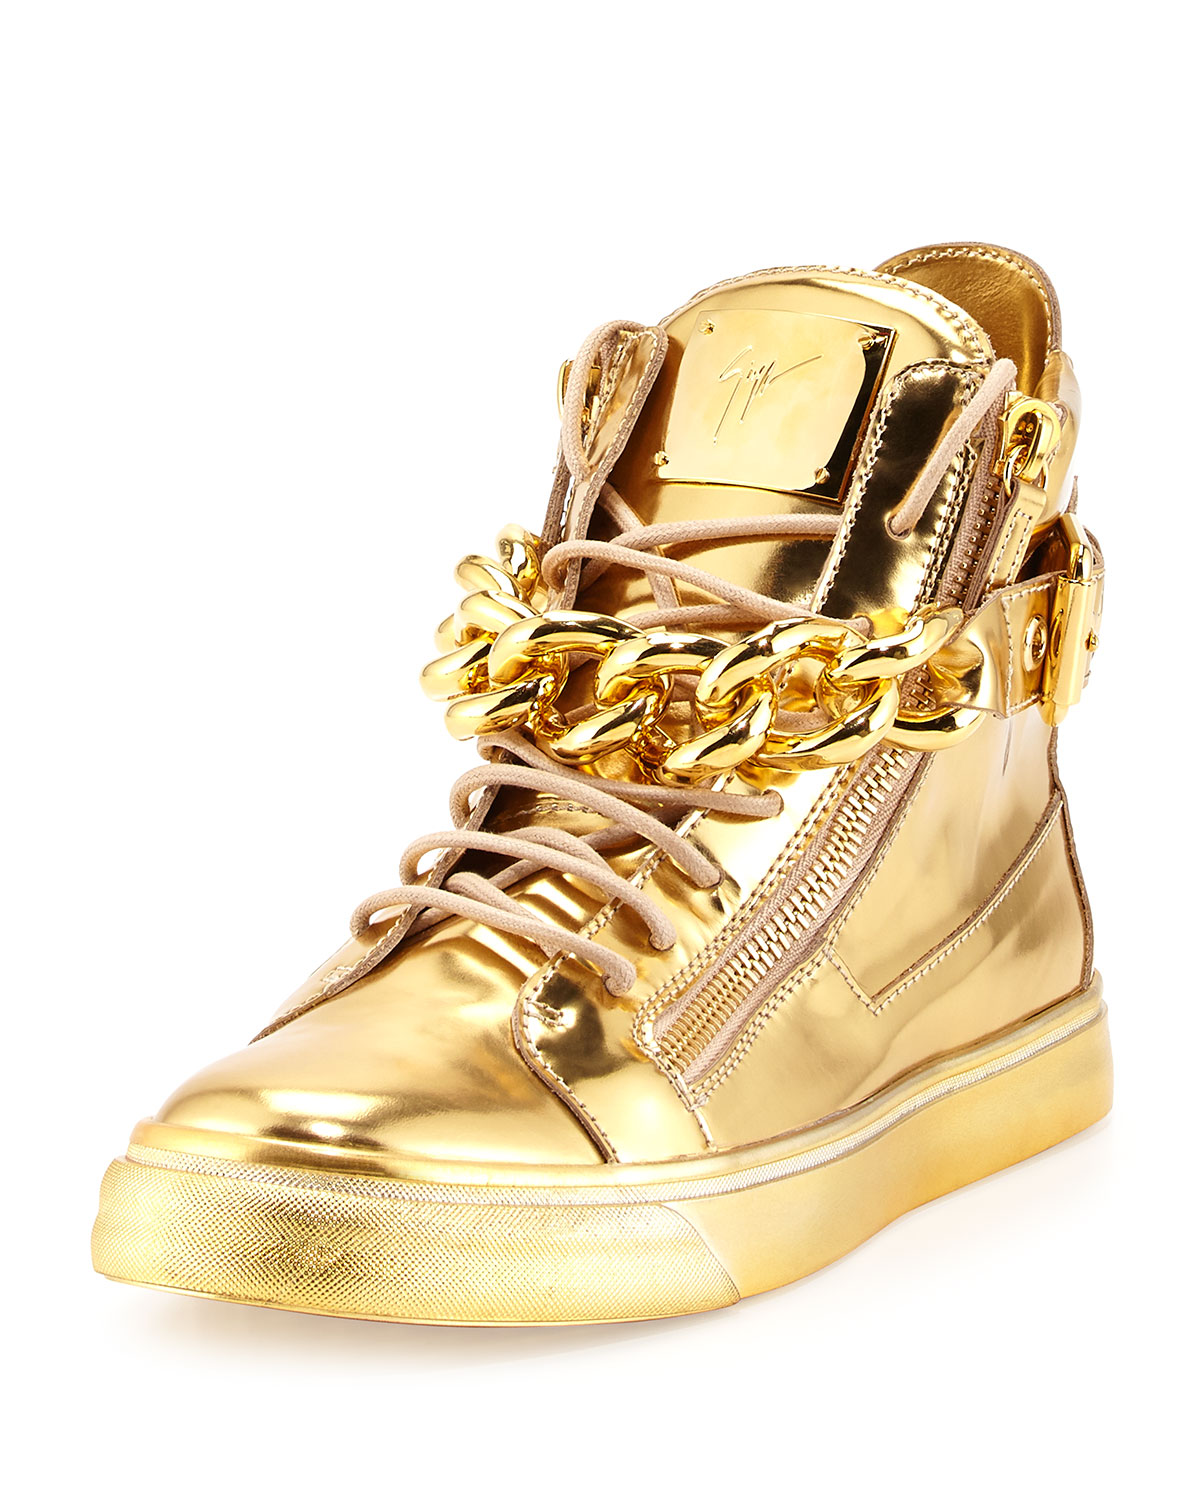 Giuseppe Zanotti Men s Metallic Chain   Zipper High-Top Sneaker ... e9513e69c